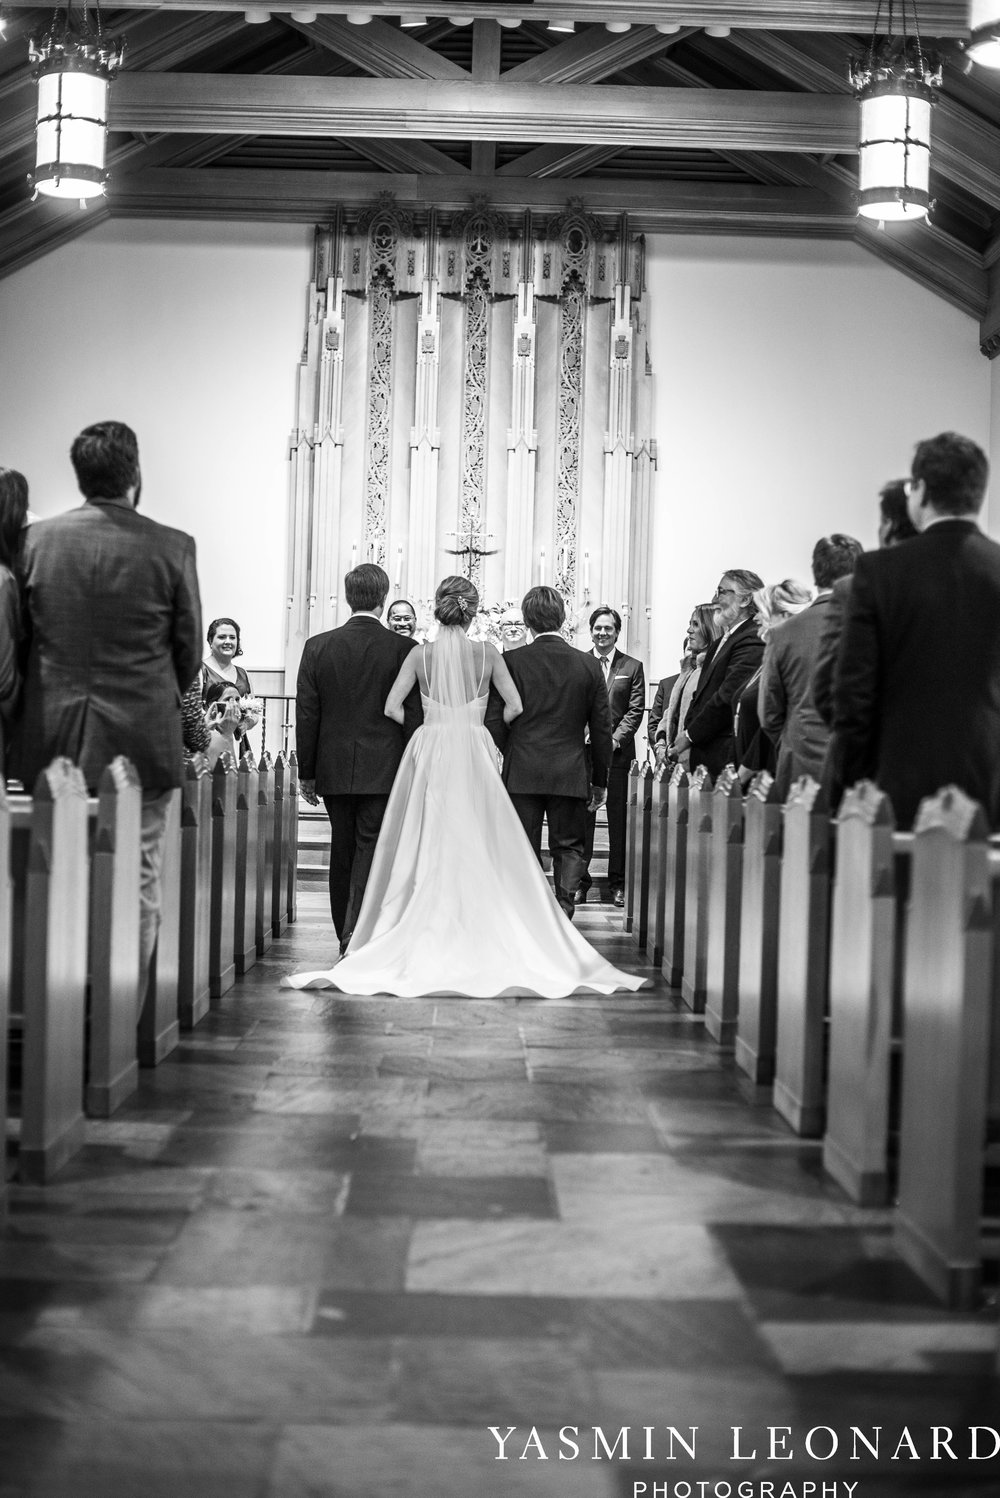 Wesley Memorial United Methodist Church - EmeryWood - High Point Weddings - High Point Wedding Photographer - NC Wedding Photographer - Yasmin Leonard Photography-19.jpg